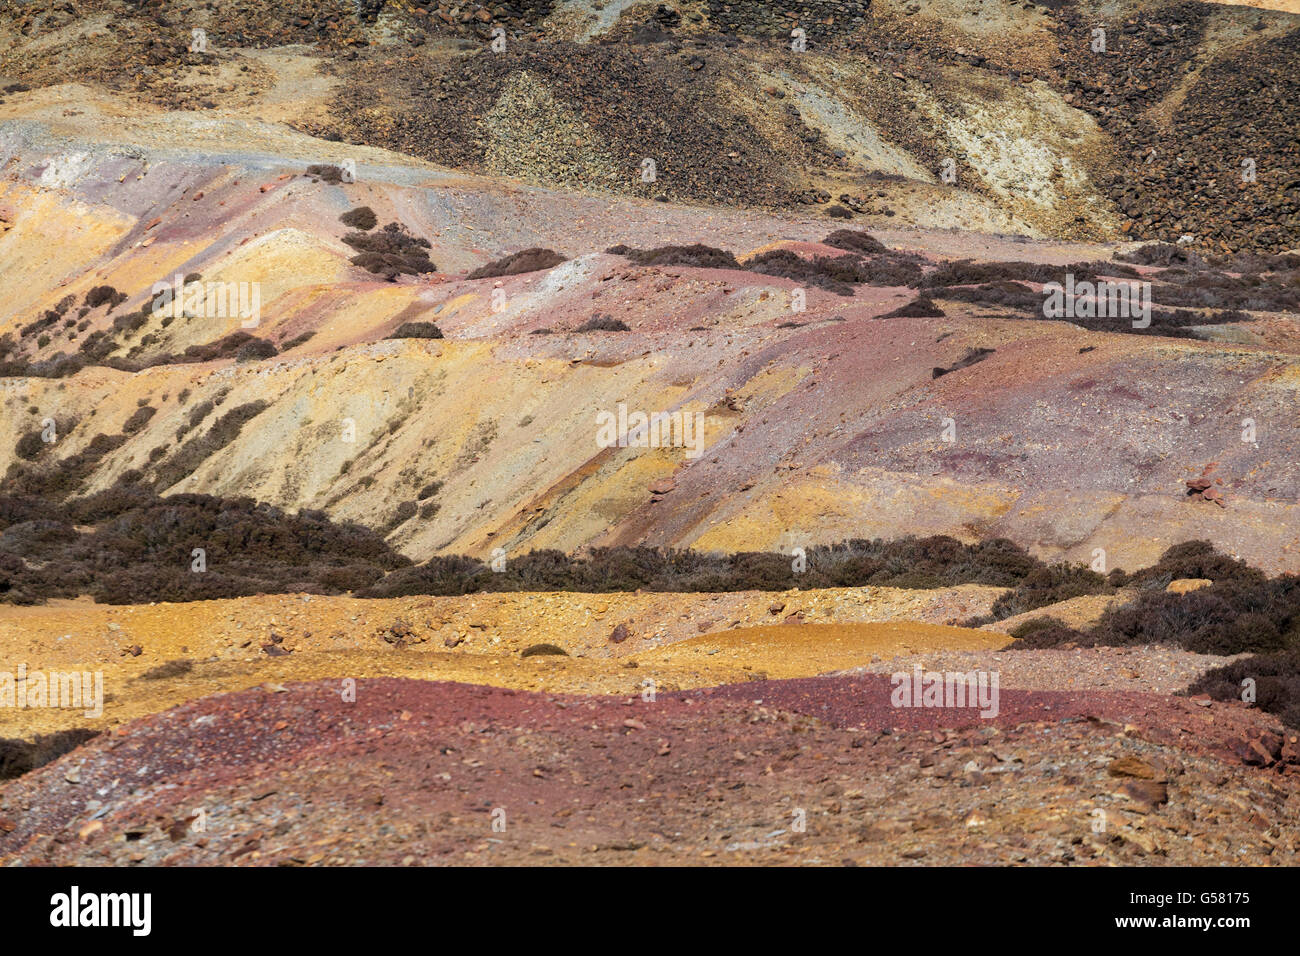 Parys Mountain Copper Mine, north-east Anglesey, Wales, UK - Stock Image